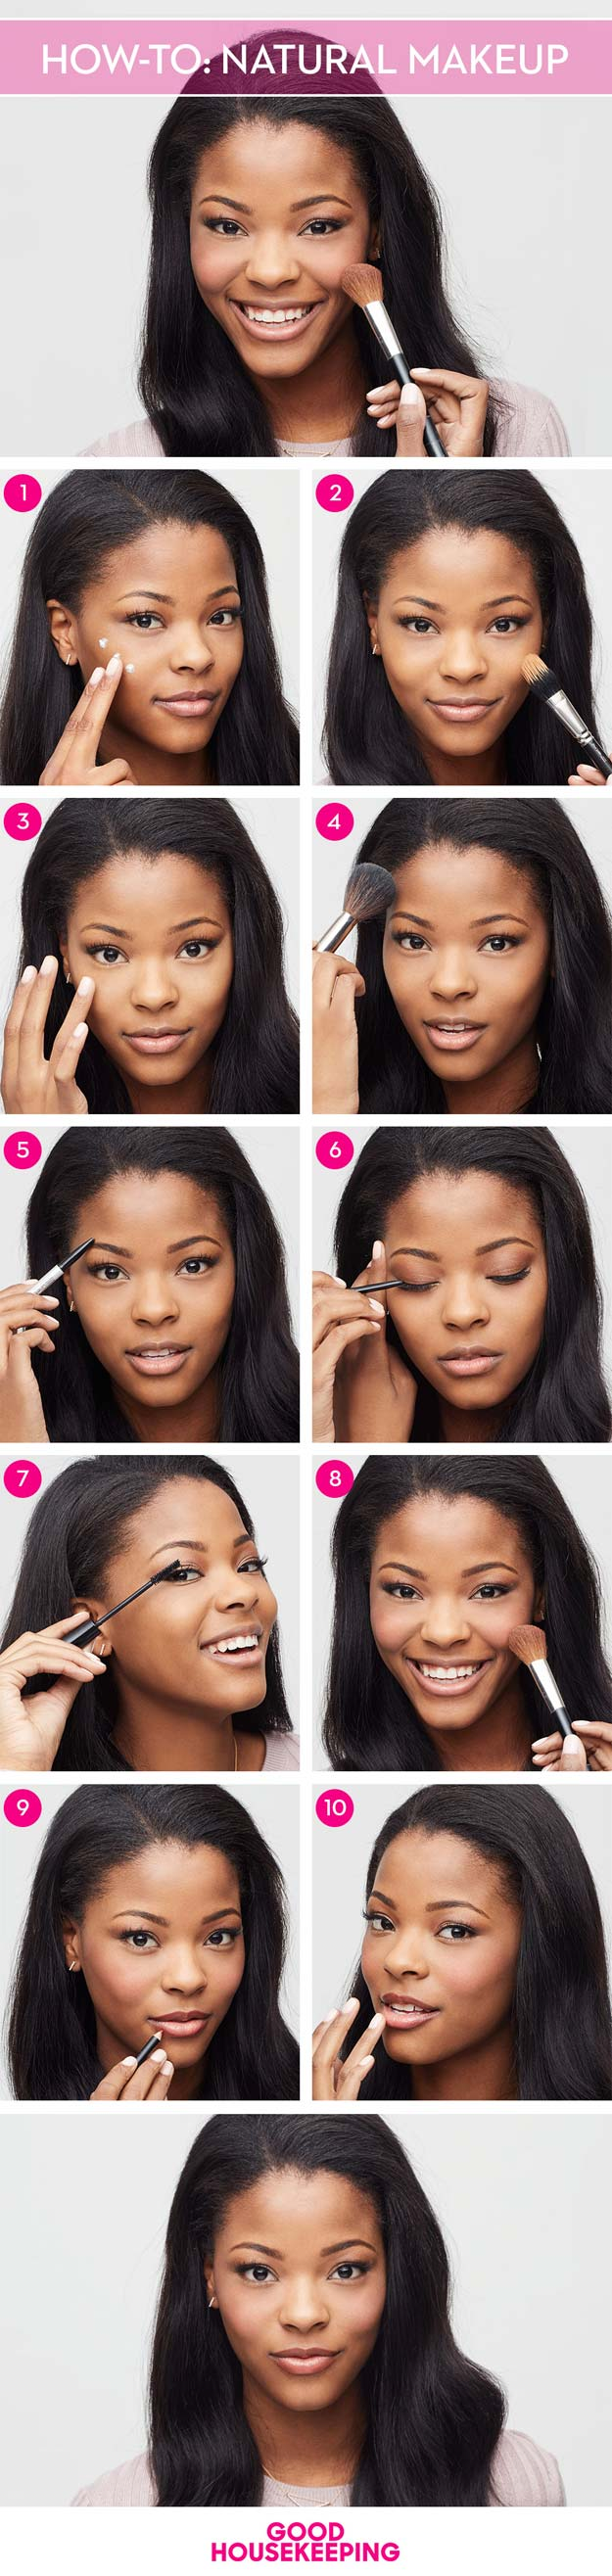 8 Cool Makeup Tutorials for Teens - DIY Projects for Teens